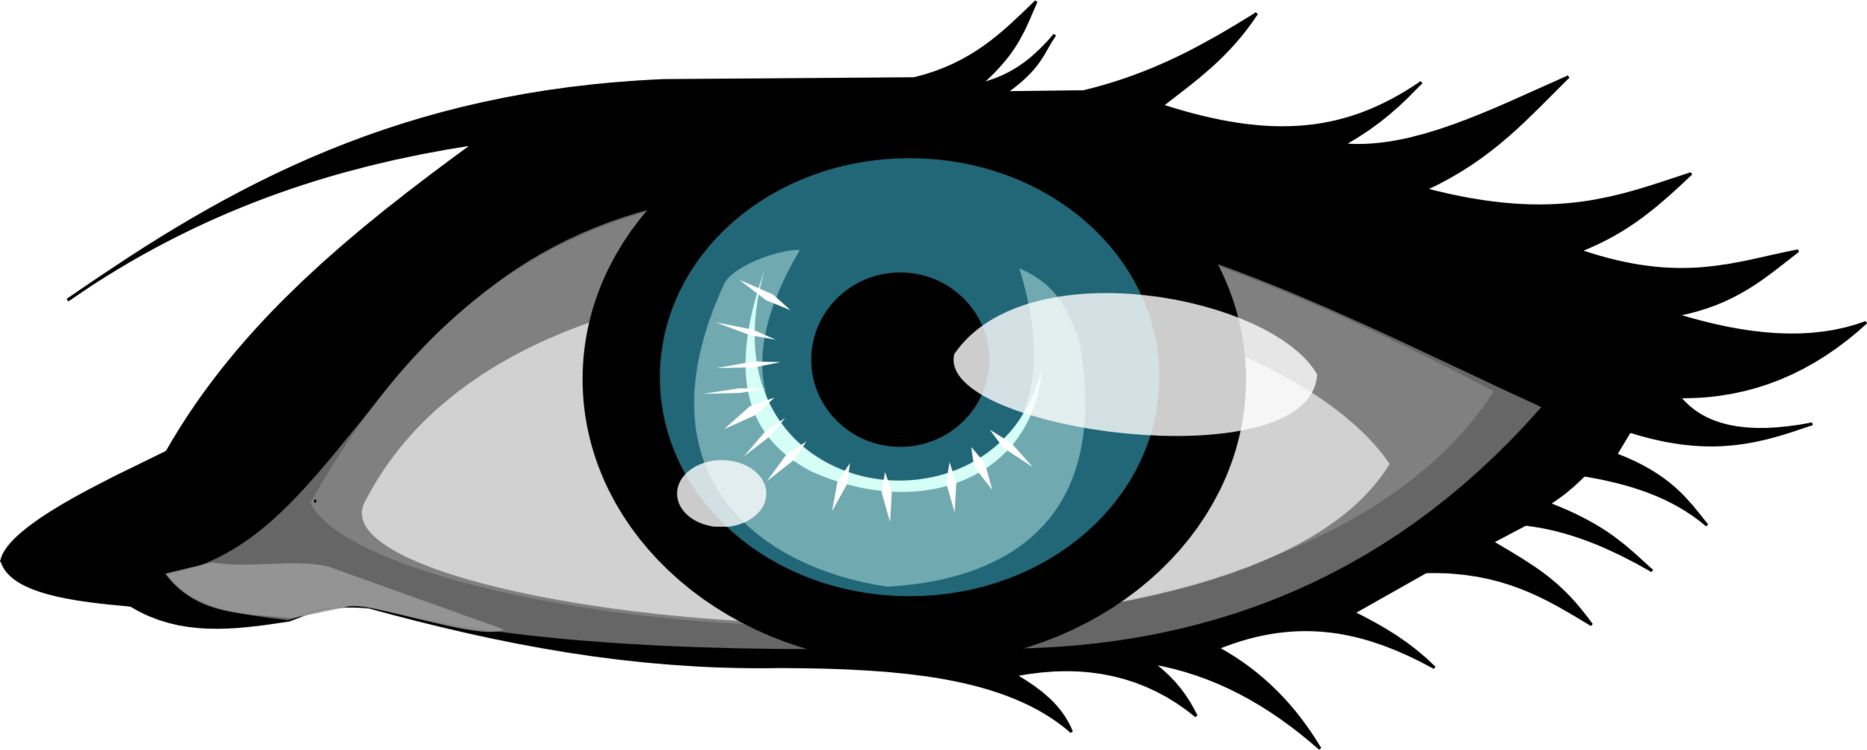 Eye clip human. Computer icons eyebrow download